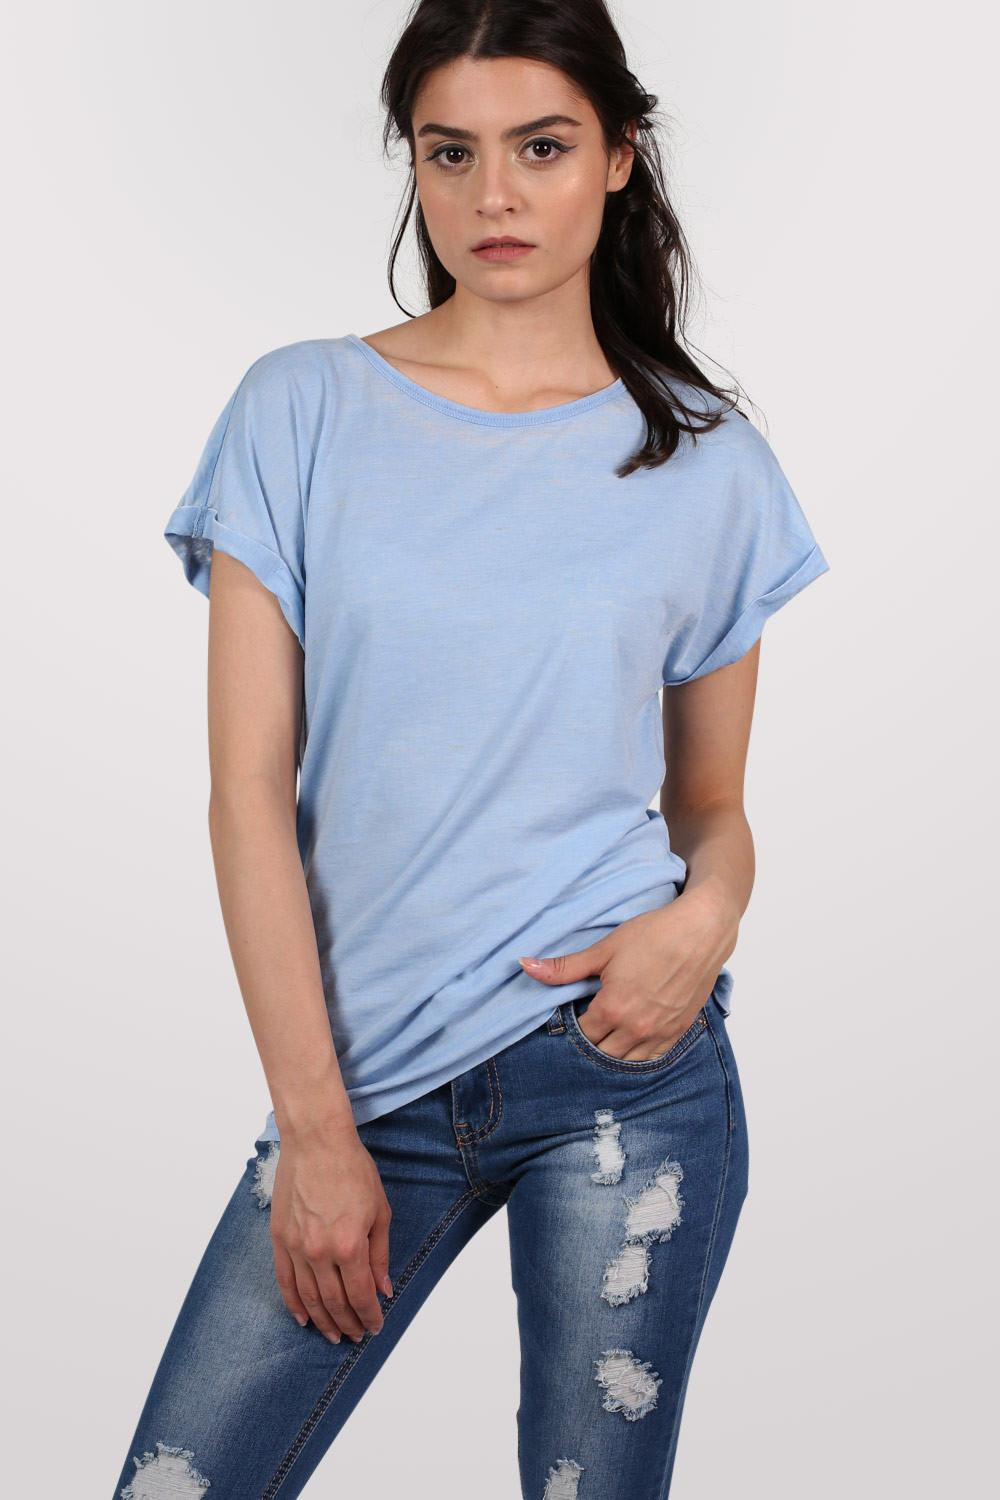 Burnout Oversized T-Shirt in Dusty Blue 0